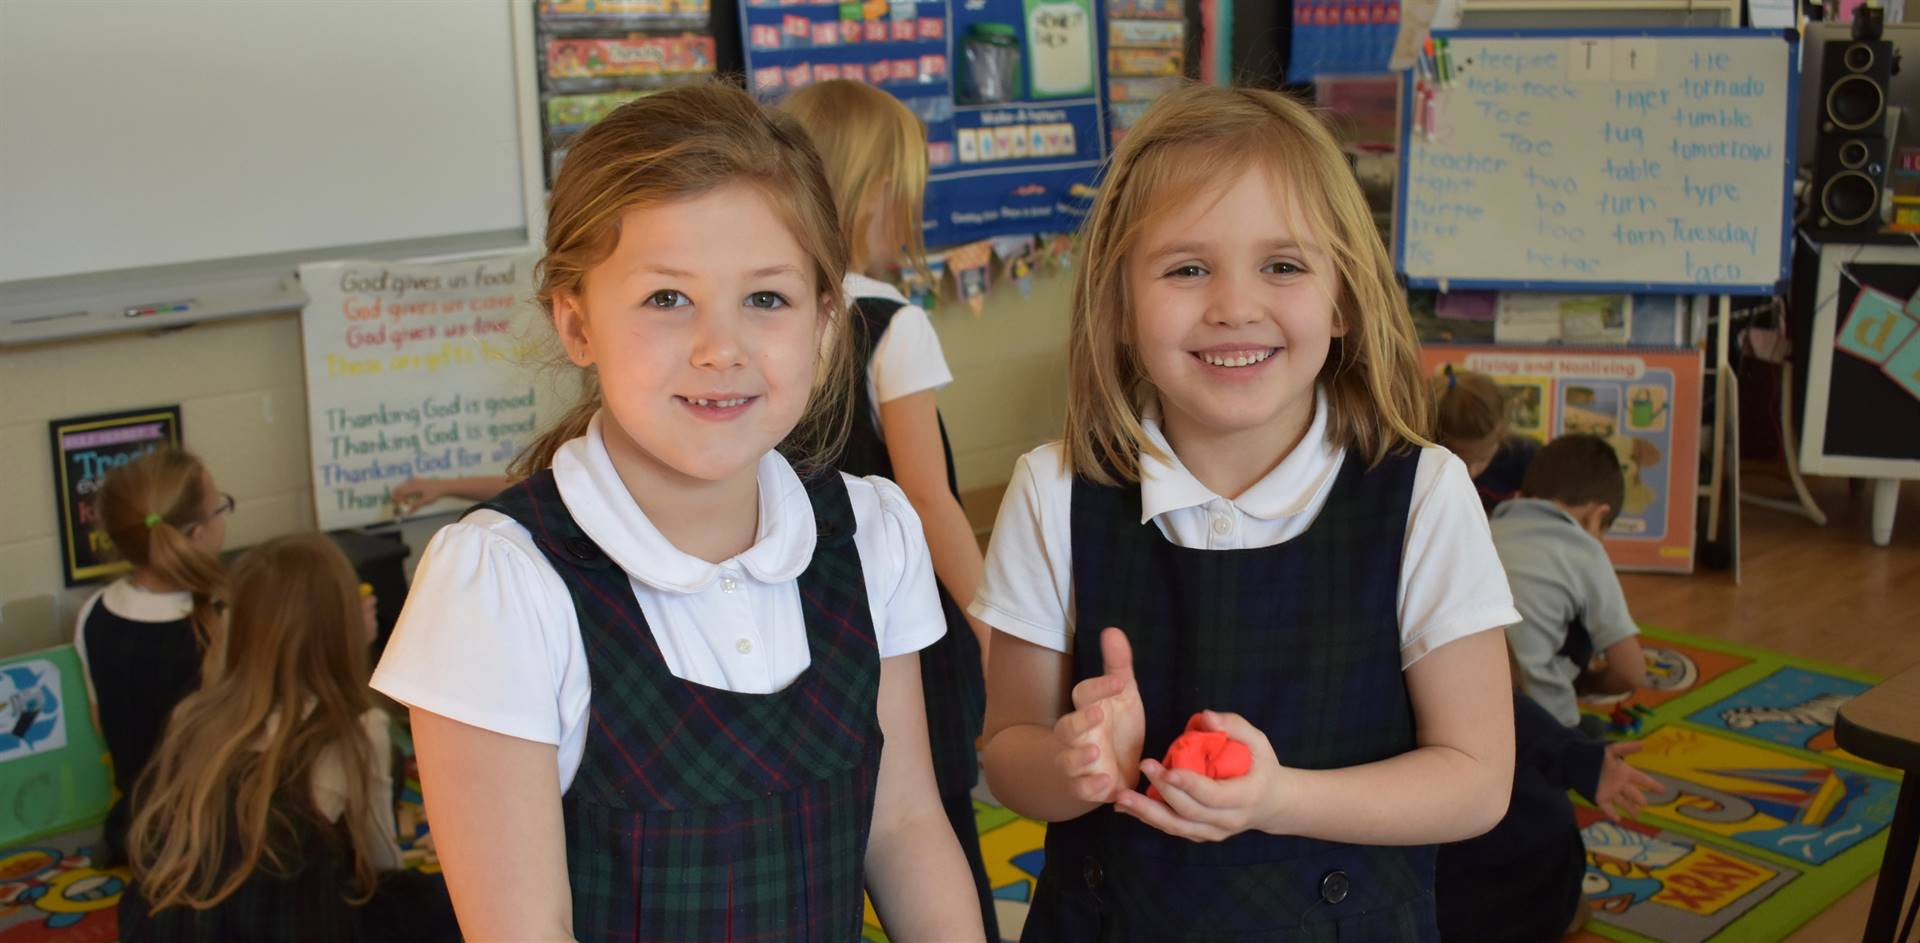 Two elementary school girls, one with a ball of red play dough